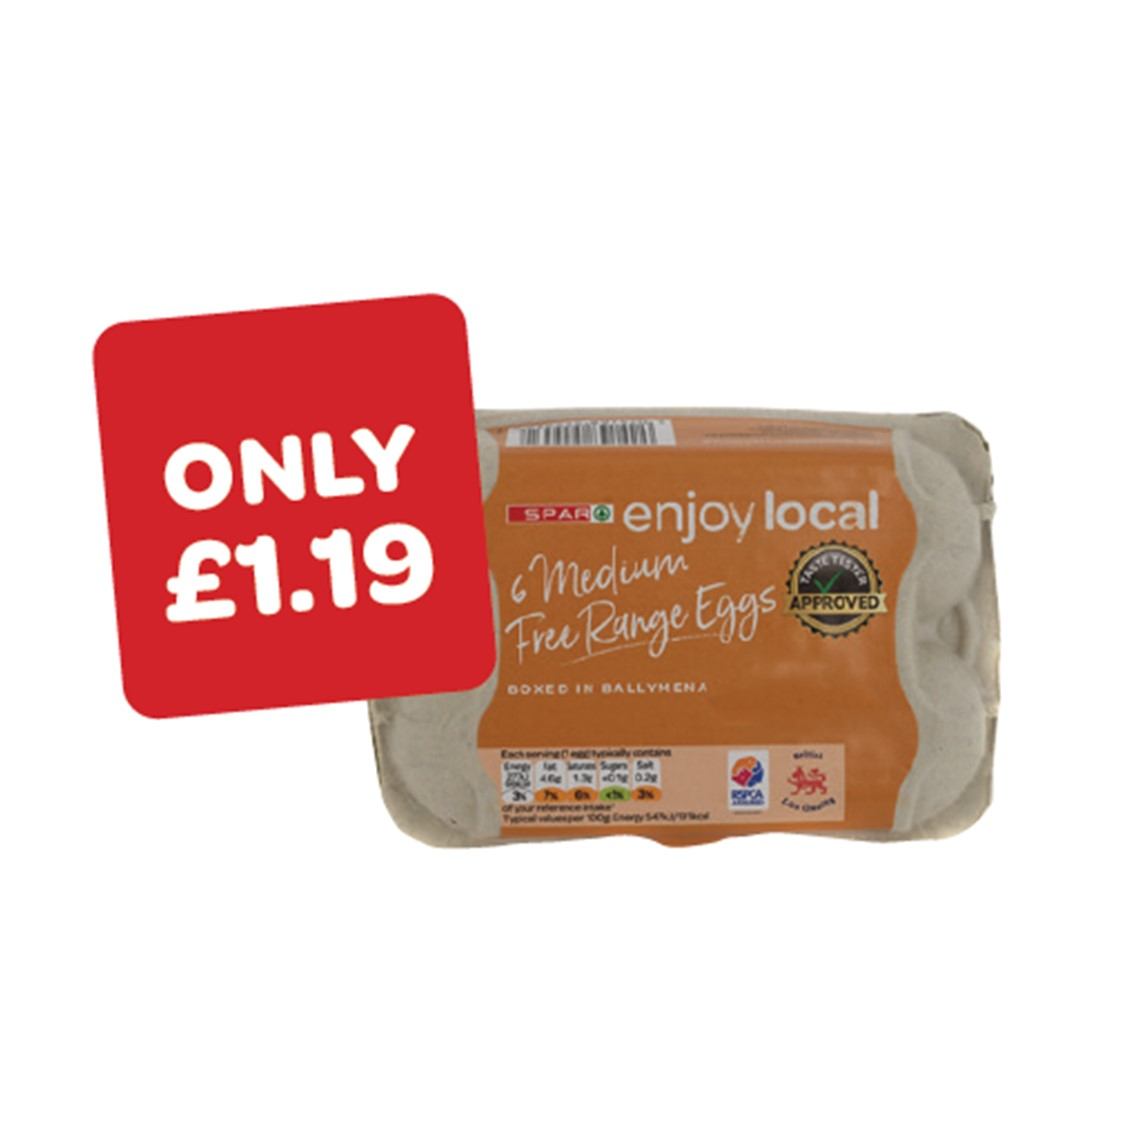 SPAR enjoy local Medium Free Range Eggs